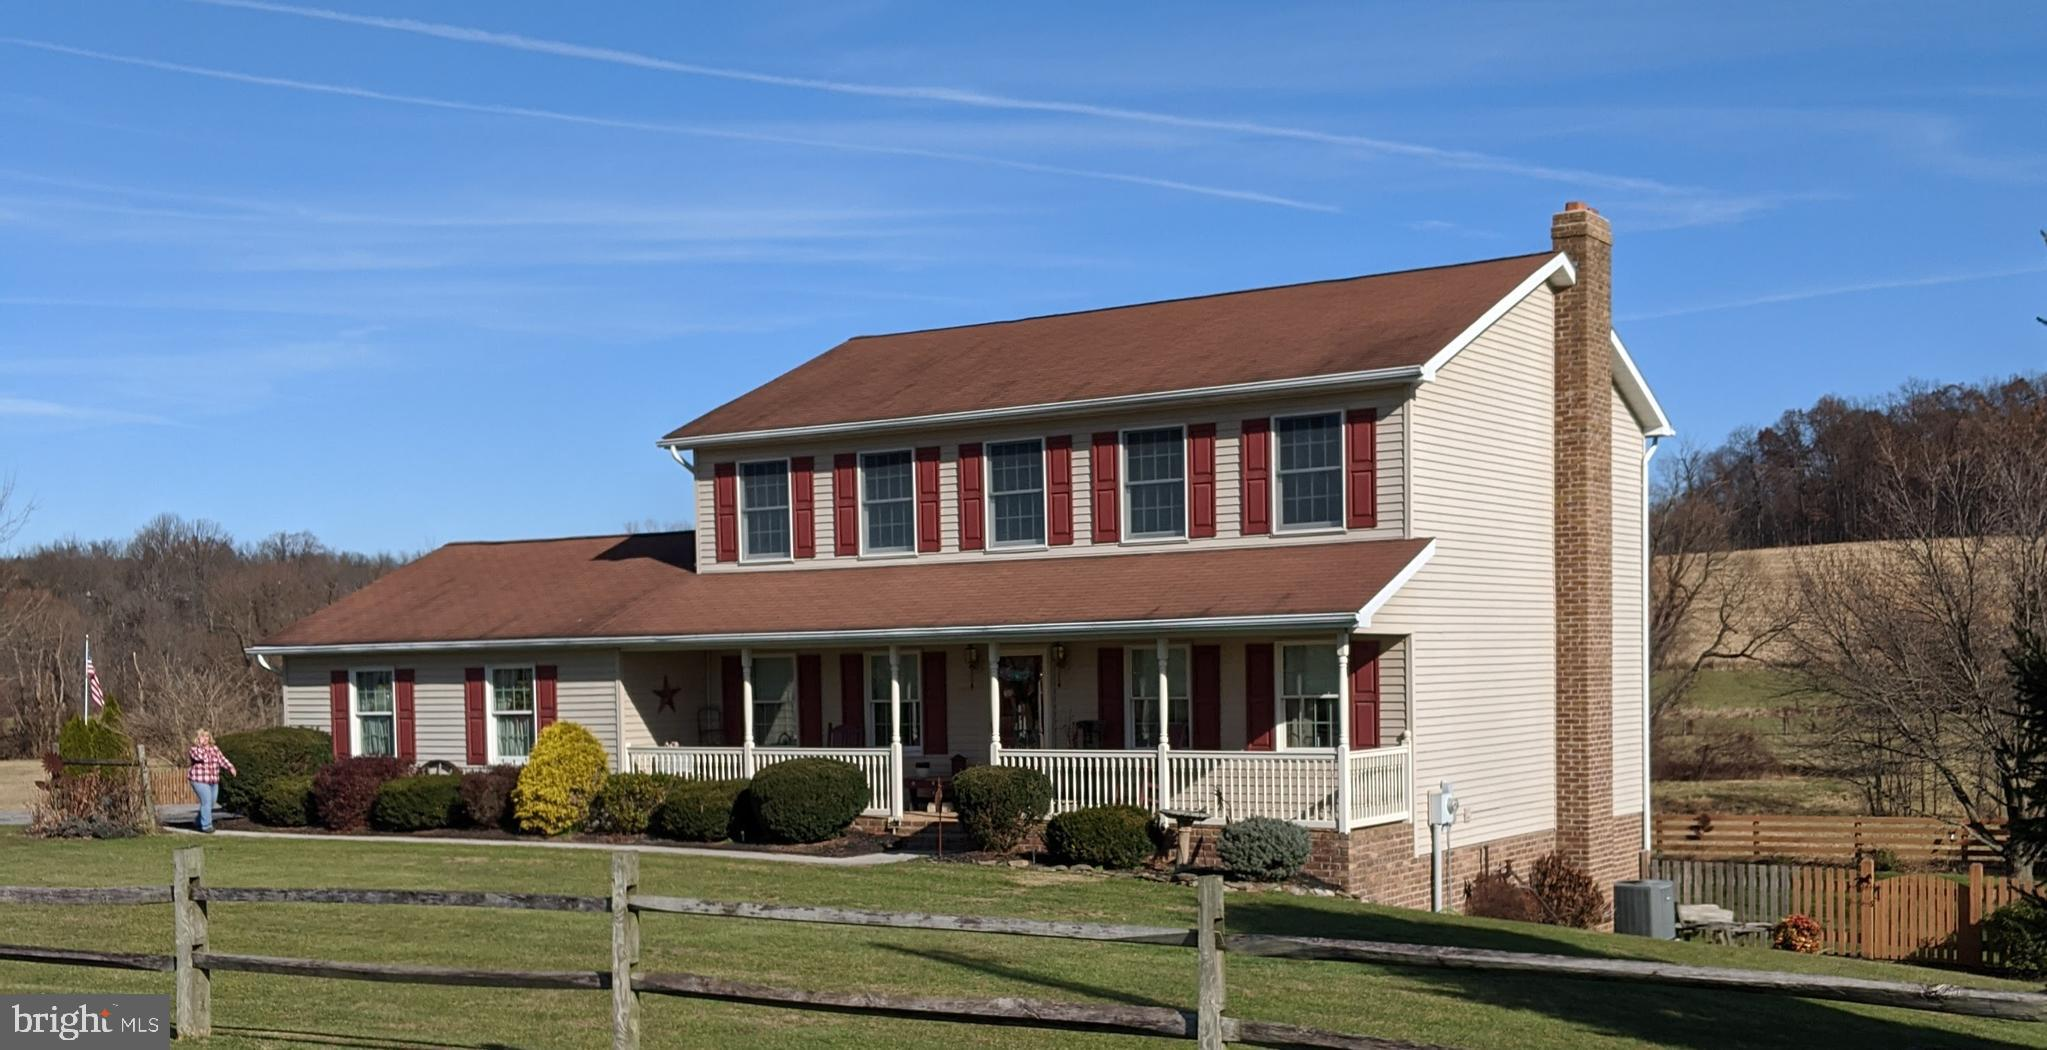 590 IMPOUNDING DAM ROAD, HANOVER, PA 17331